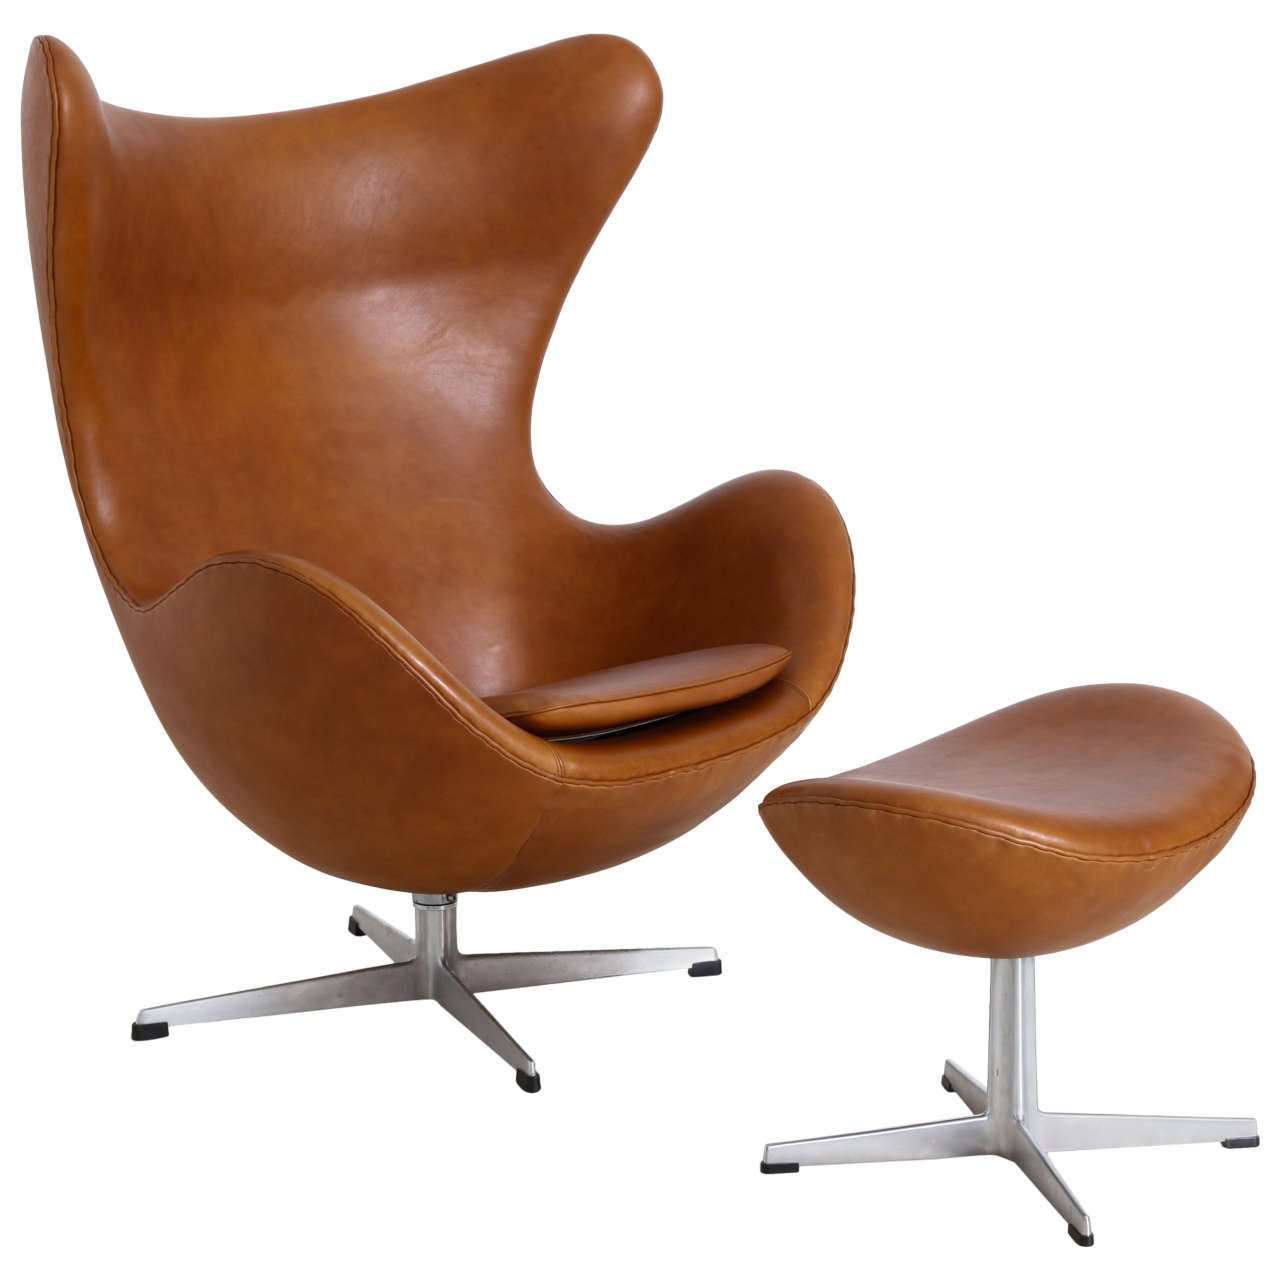 Arne jacobsen egg chair leather - Arne Jacobsen Egg Chair With